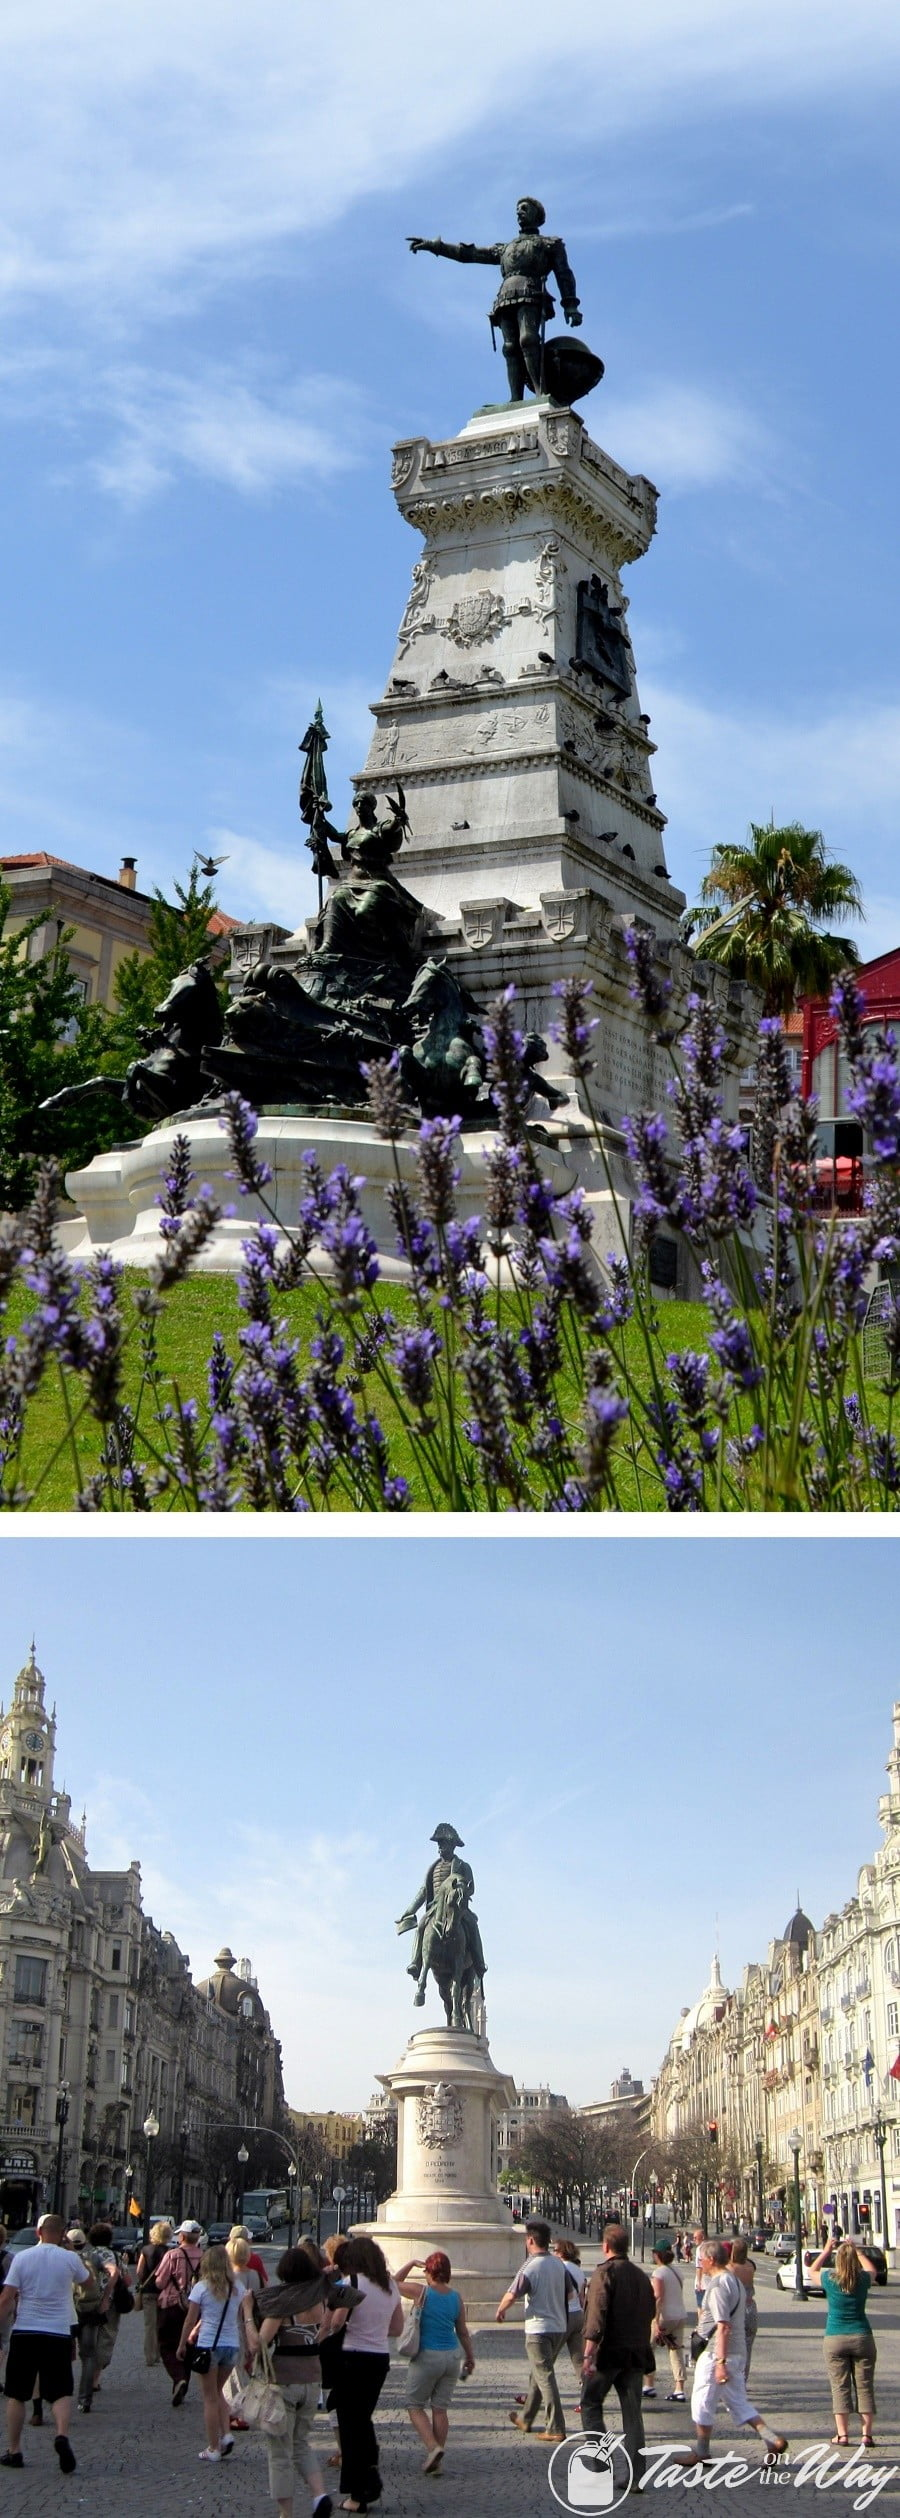 Check out our travel story about the monuments in Porto, Portugal with pictures @tasteontheway